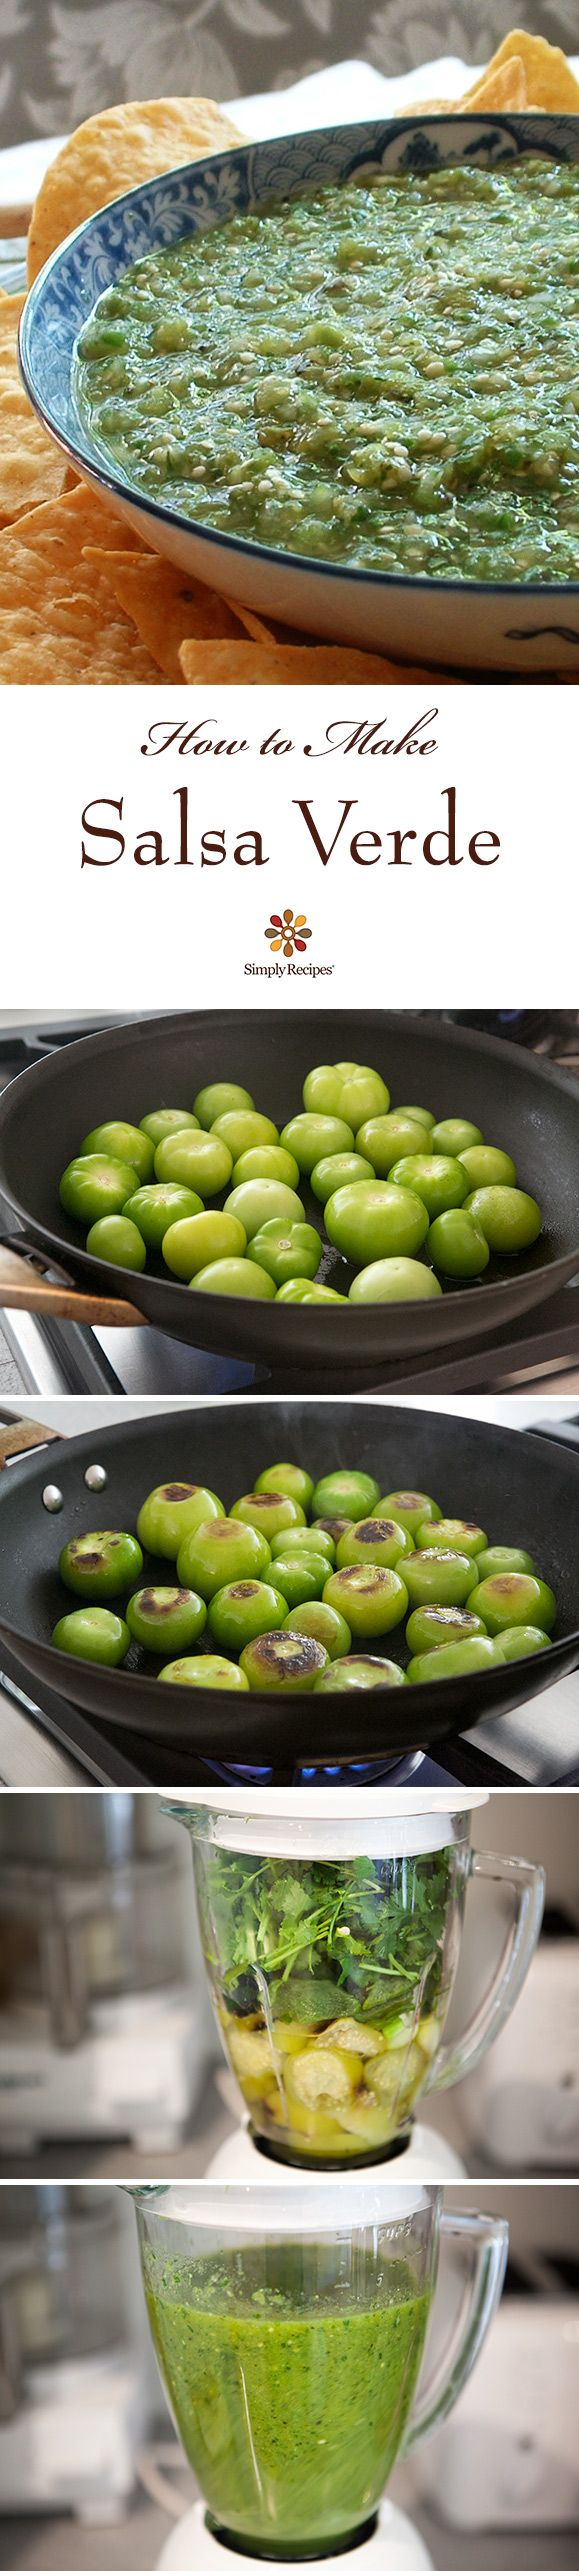 3 easy ways to make tomatillo salsa verde! A delicious Mexican green salsa made with roasted tomatillos, chile peppers, lime juice, cilantro, and onion. Make for a summer holiday gathering! On SimplyRecipes.com